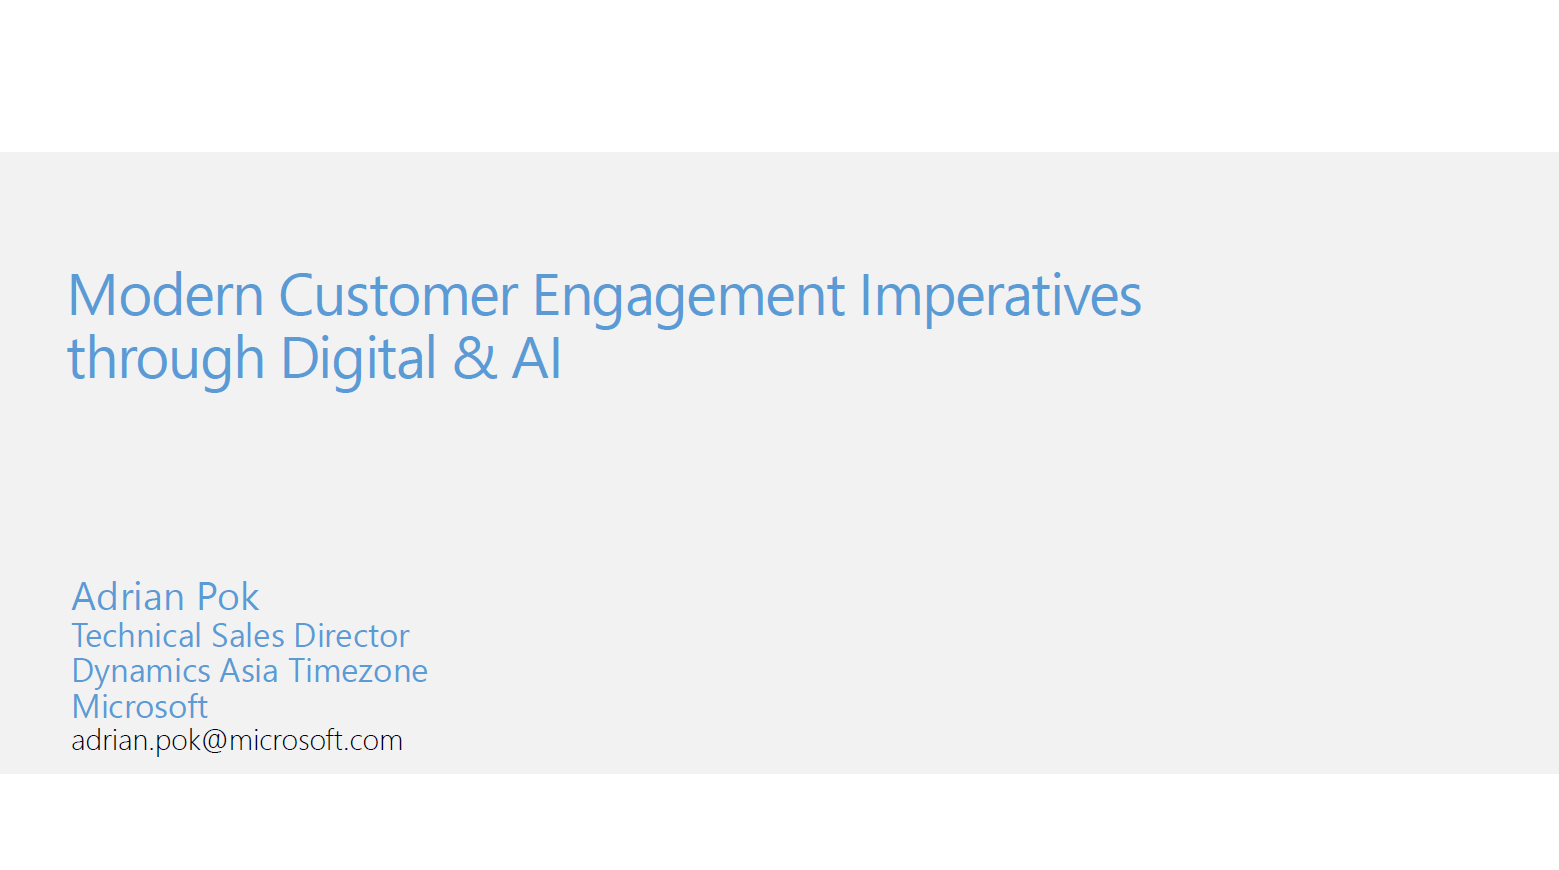 Modern Customer Engagement Imperatives through Digital & AI